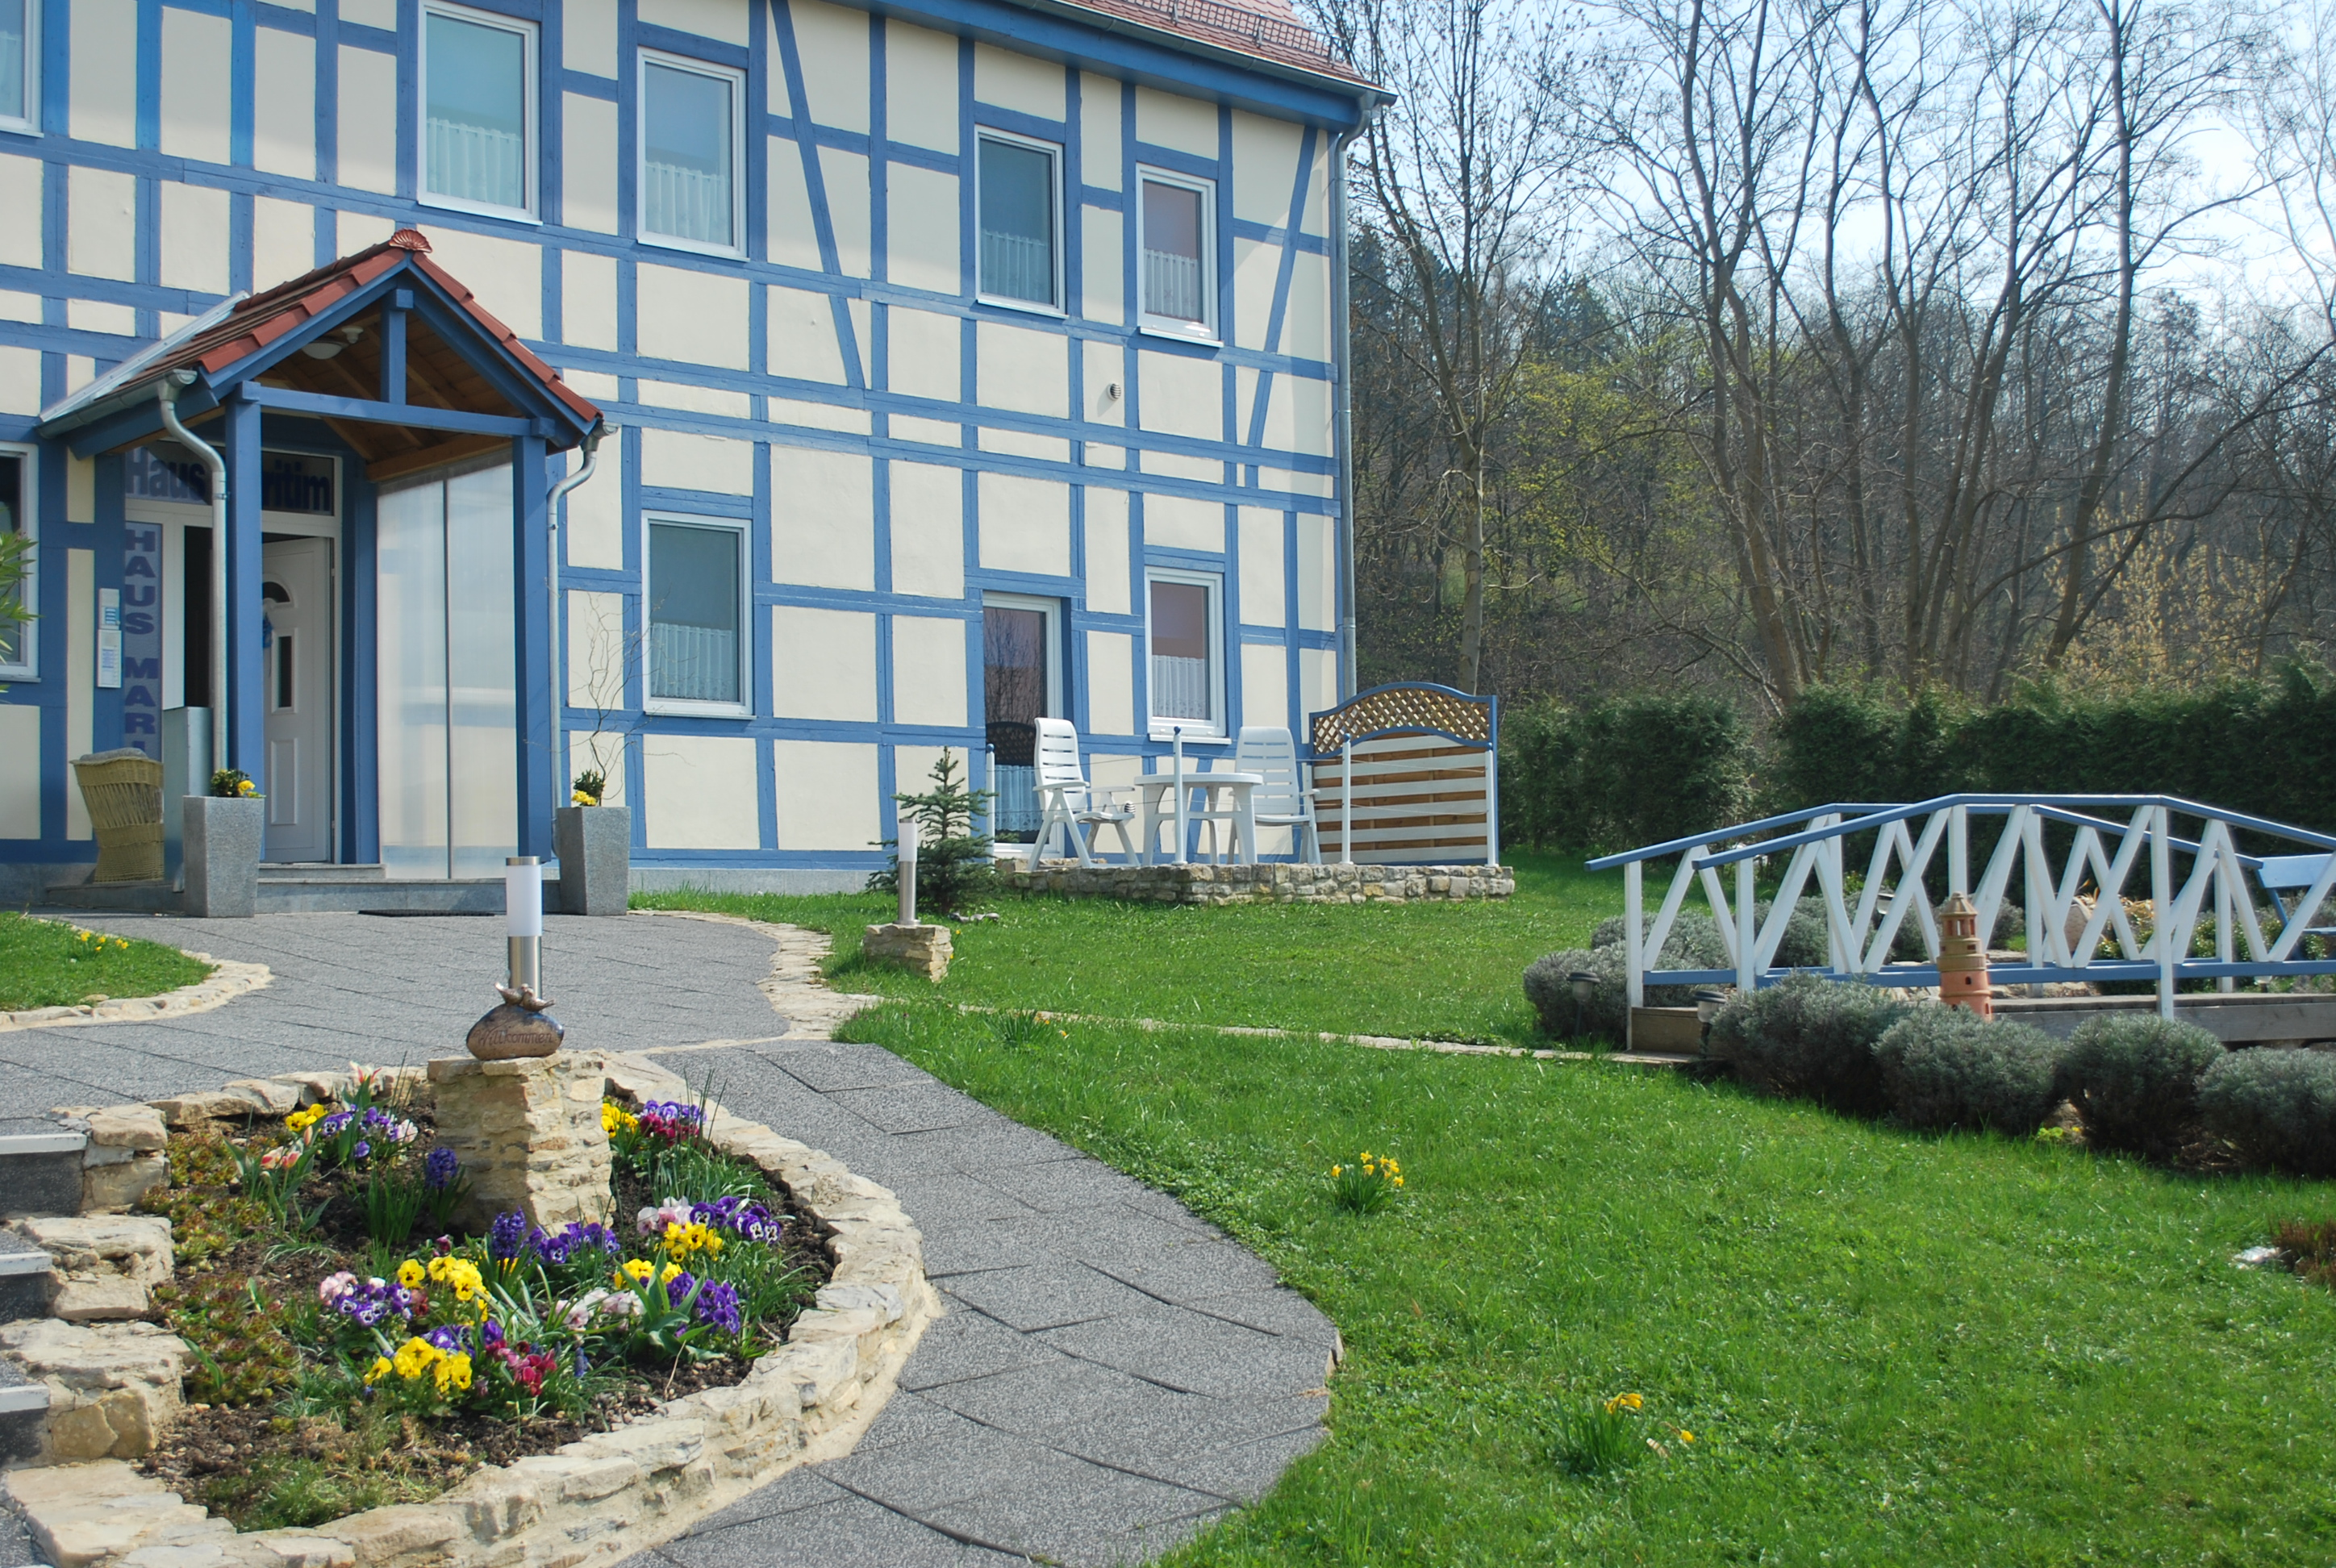 Holiday apartment Seepferdchen (2 Pers- 20m2) (421799), Bad Sulza, Weimar Country, Thuringia, Germany, picture 18